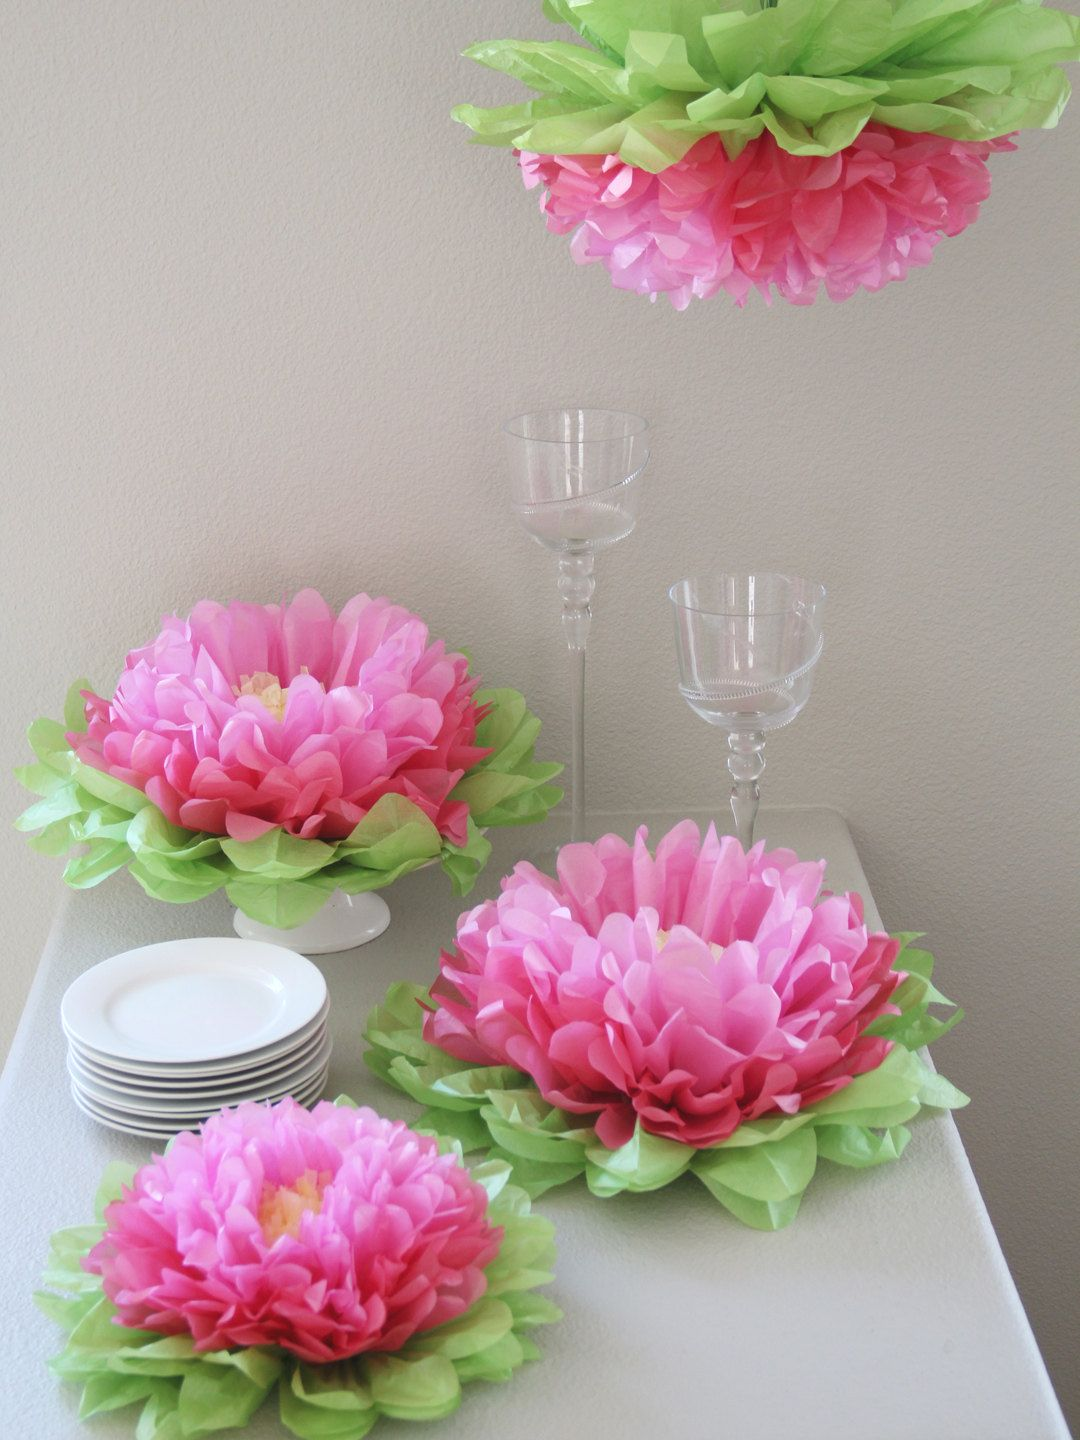 Hanging Paper Flowers By Heart To Heart At Gilt Flor Pinterest